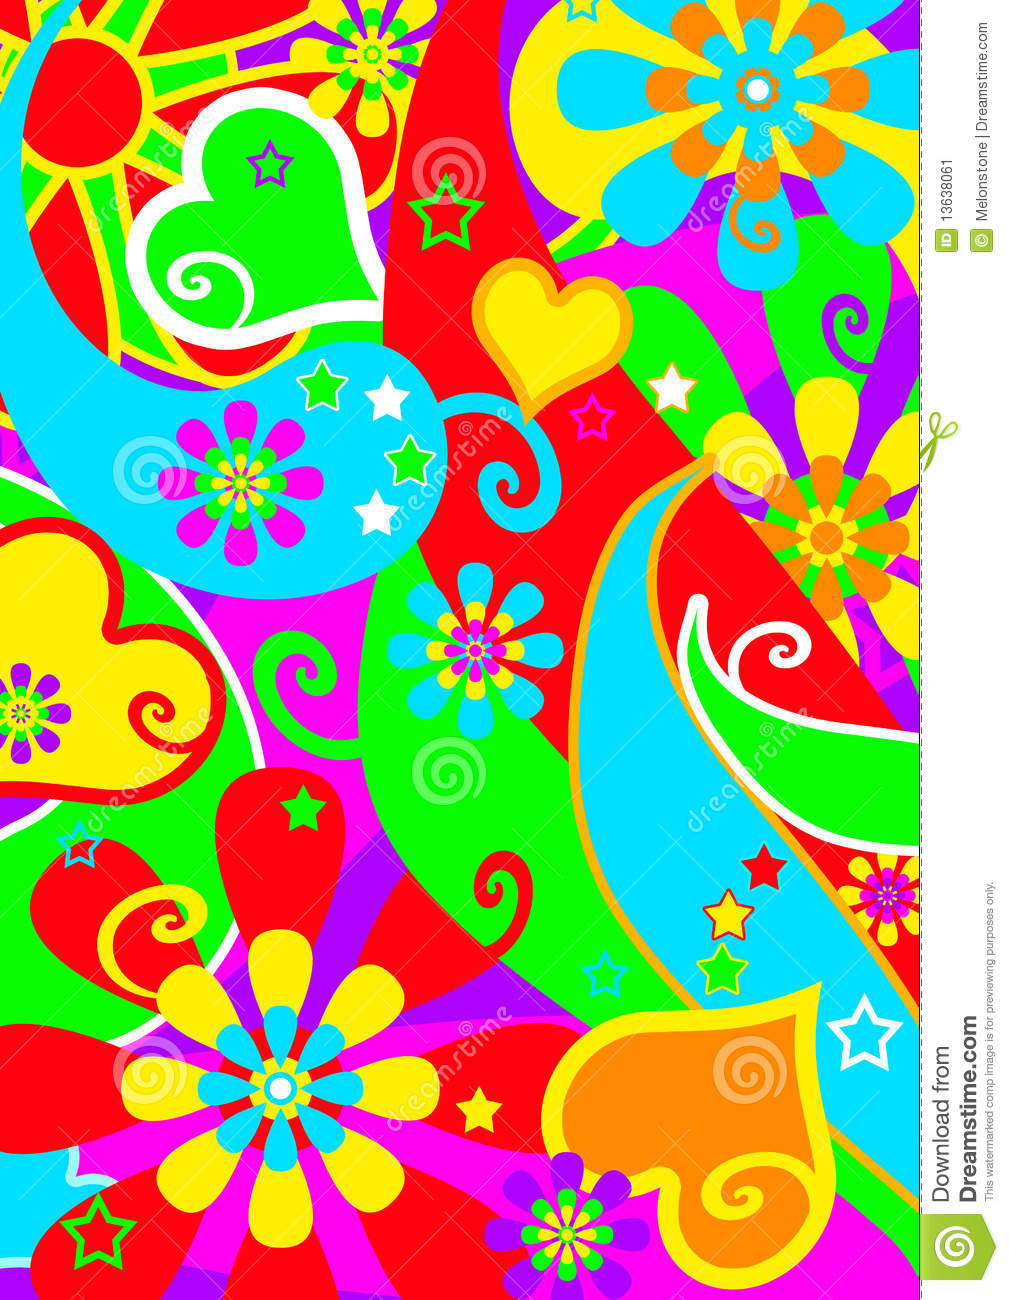 Brightly colored groovy flower-power funky pattern in a hippie style ...